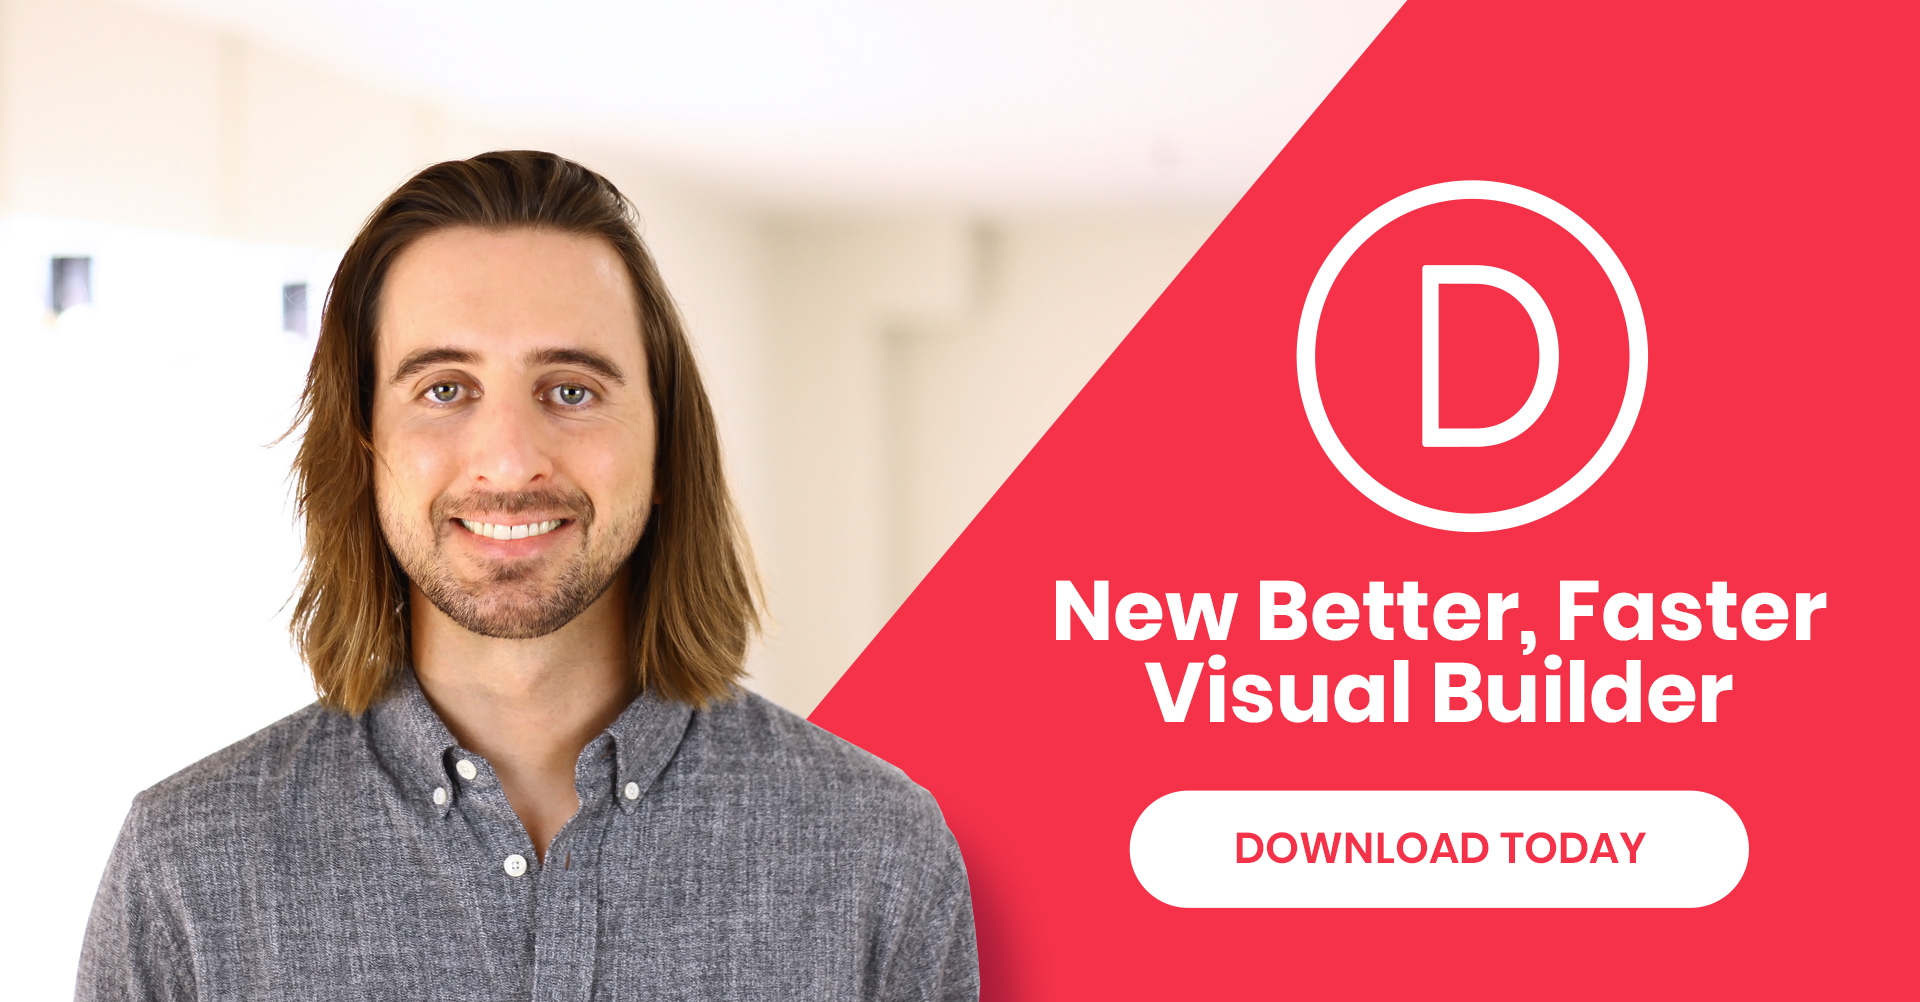 Divi Feature Update! The New Blazing Fast Visual Builder Powered by React 16